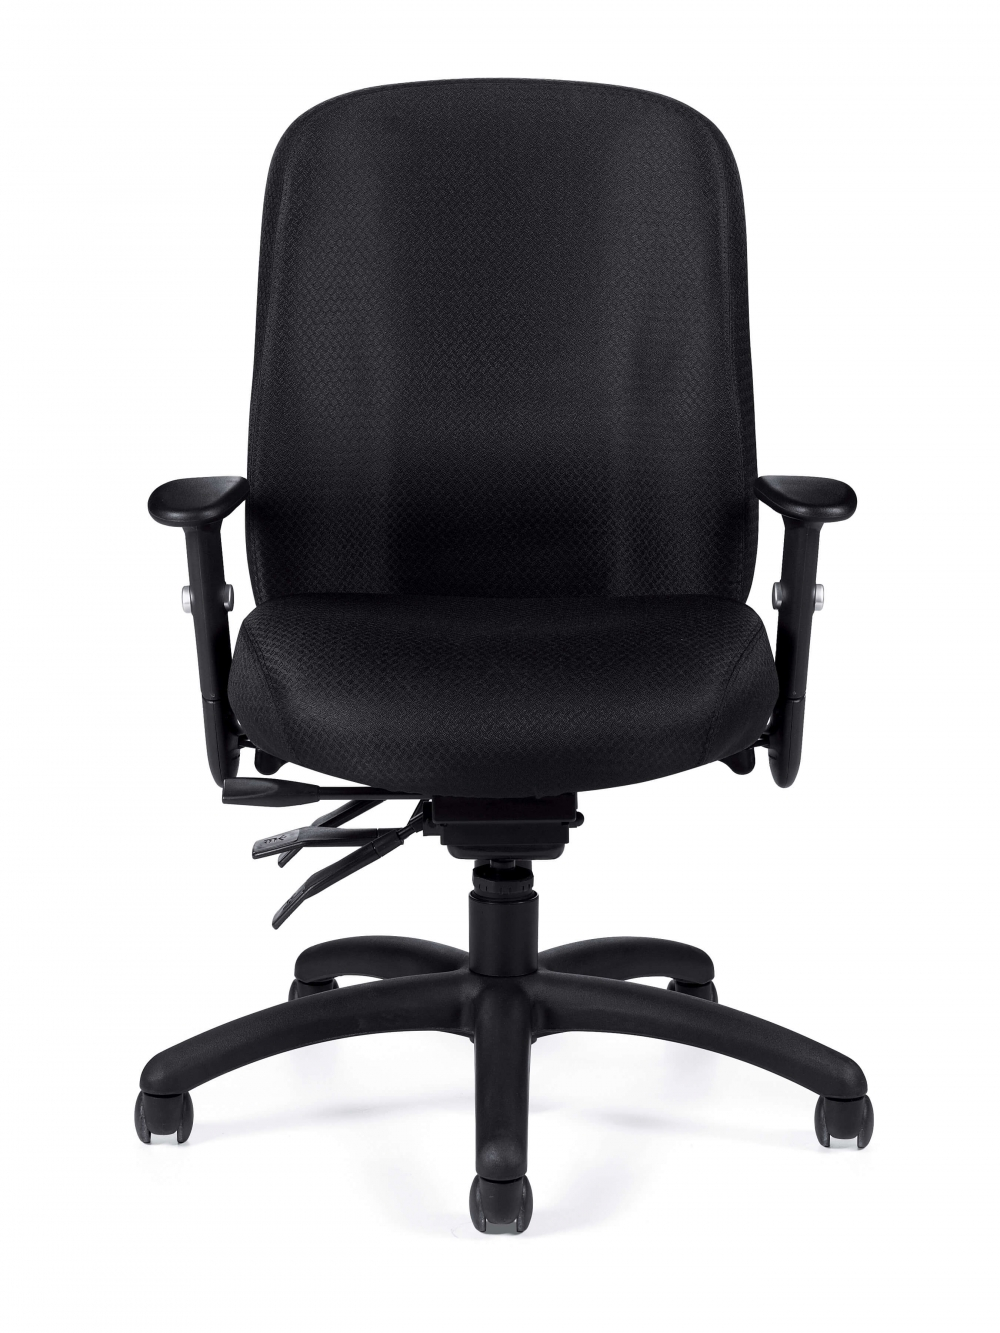 Upholstered desk chair front view